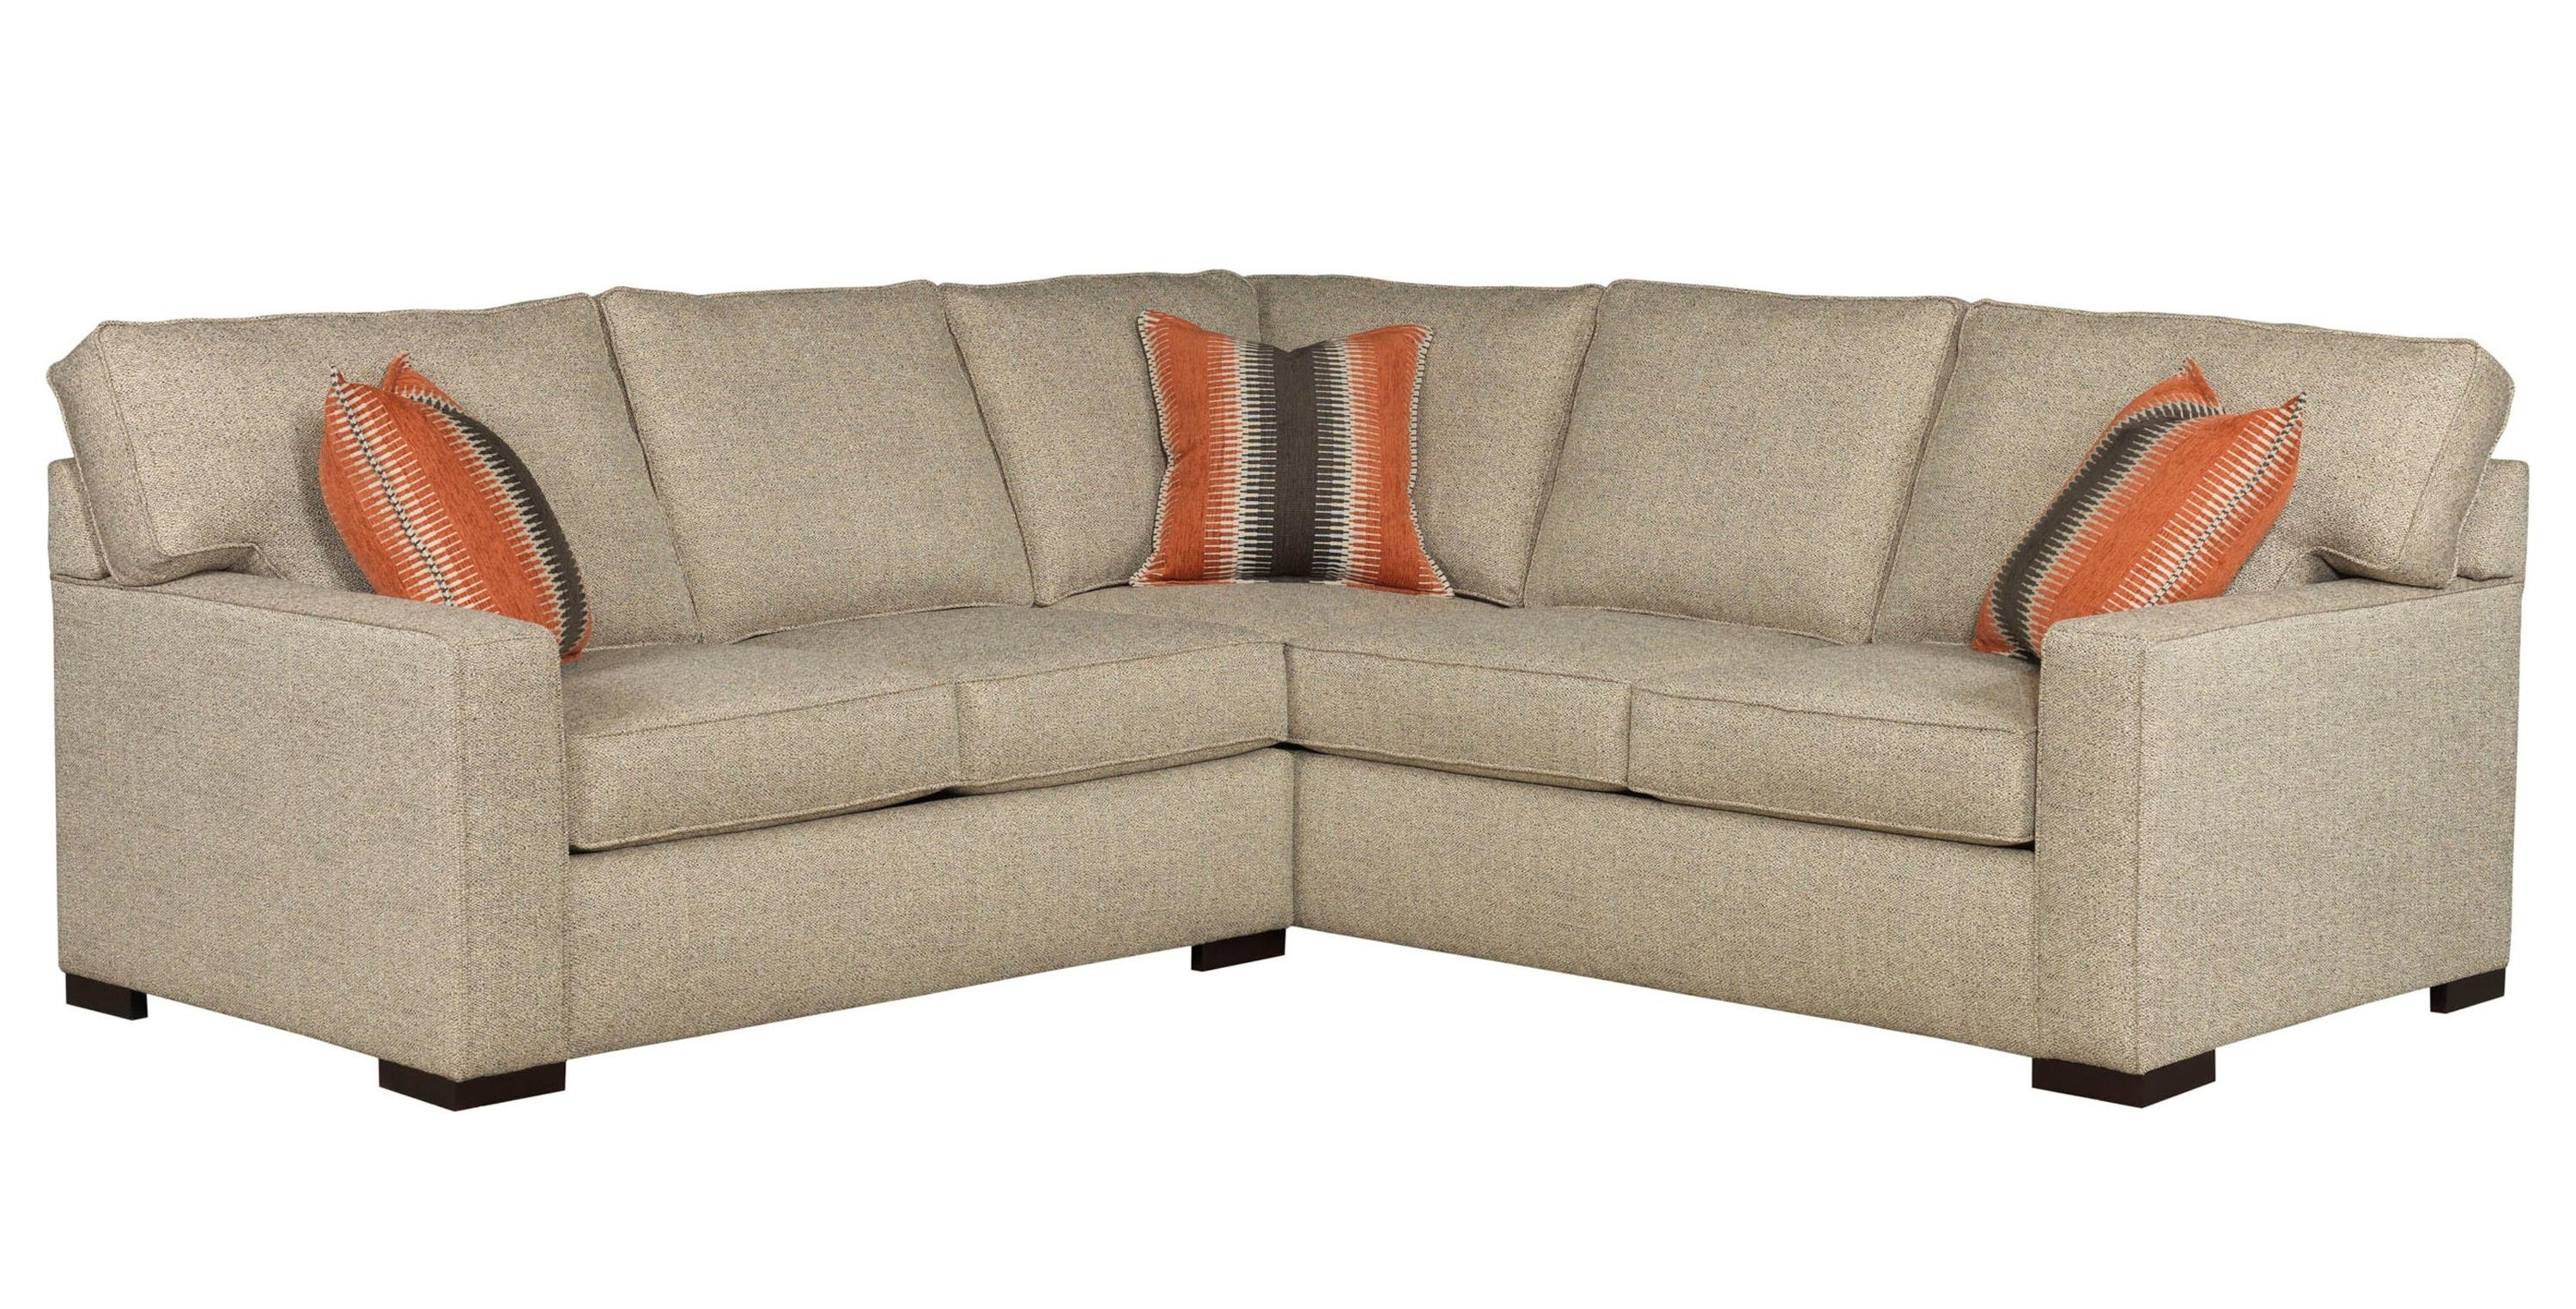 Preferred Broyhill Furniture Raphael Contemporary Two Piece Sectional Sofa Regarding Salt Lake City Sectional Sofas (View 7 of 20)